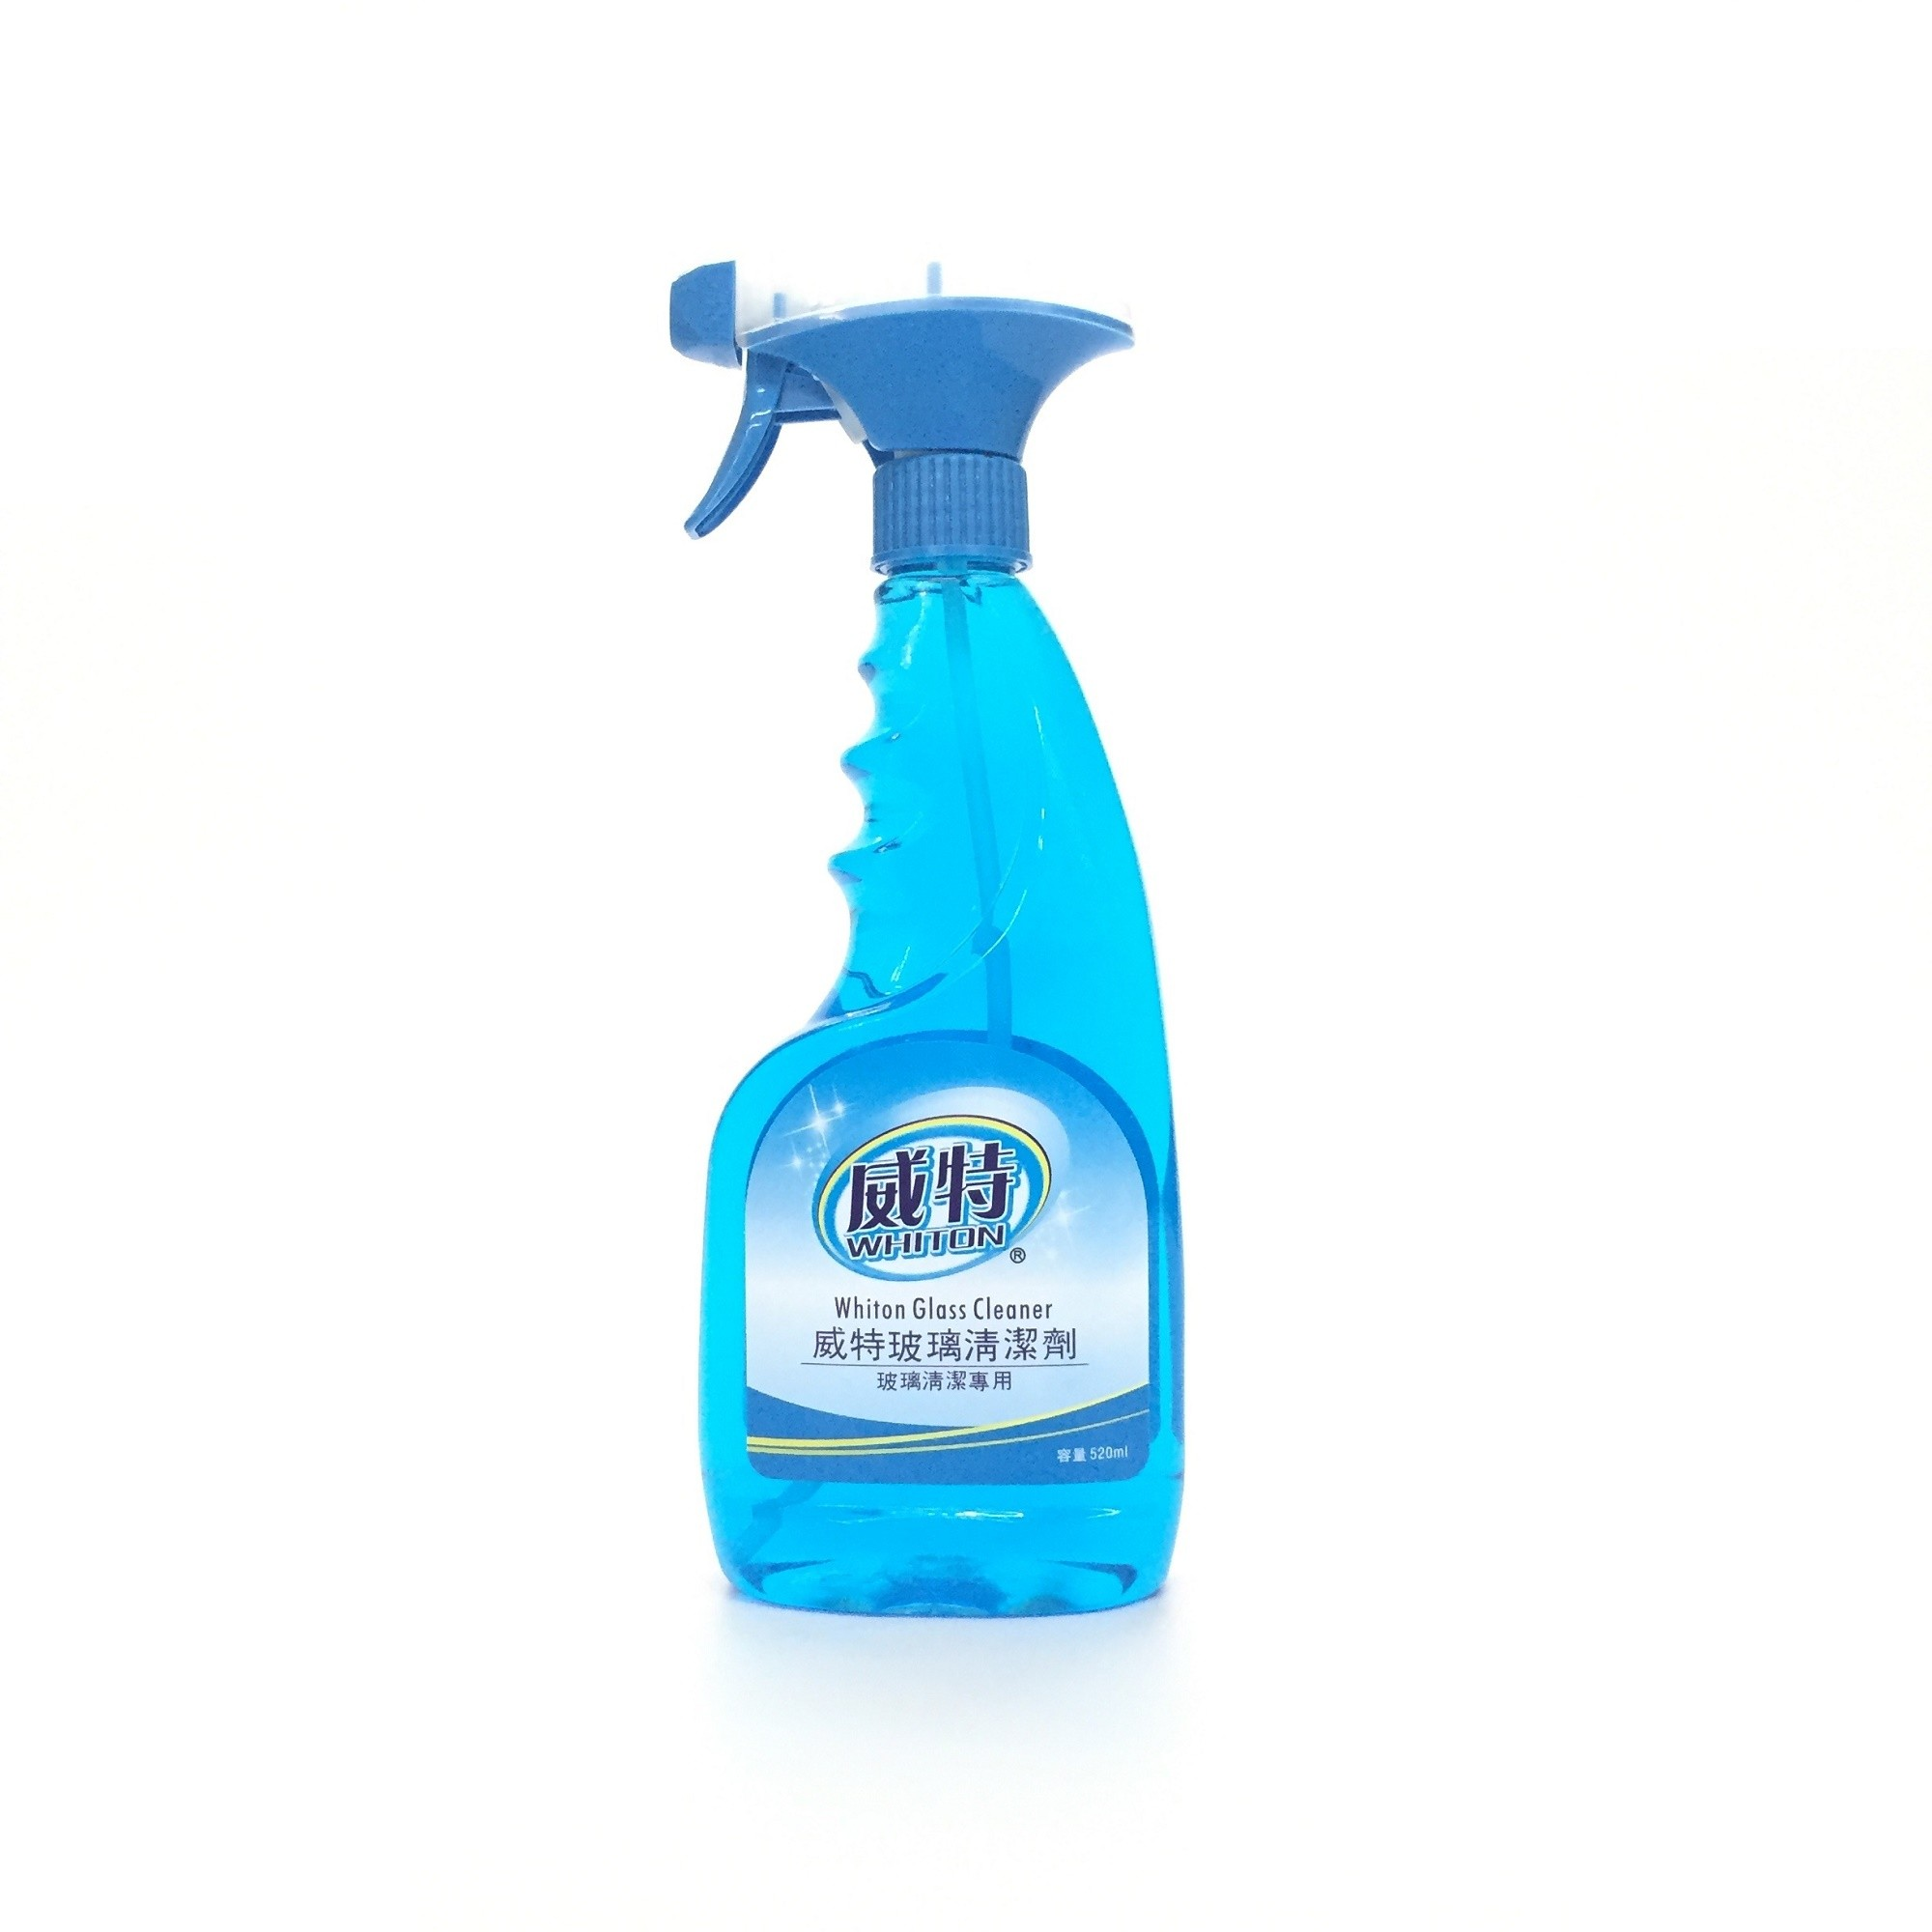 Whiton - Glass Cleaner (520ml)